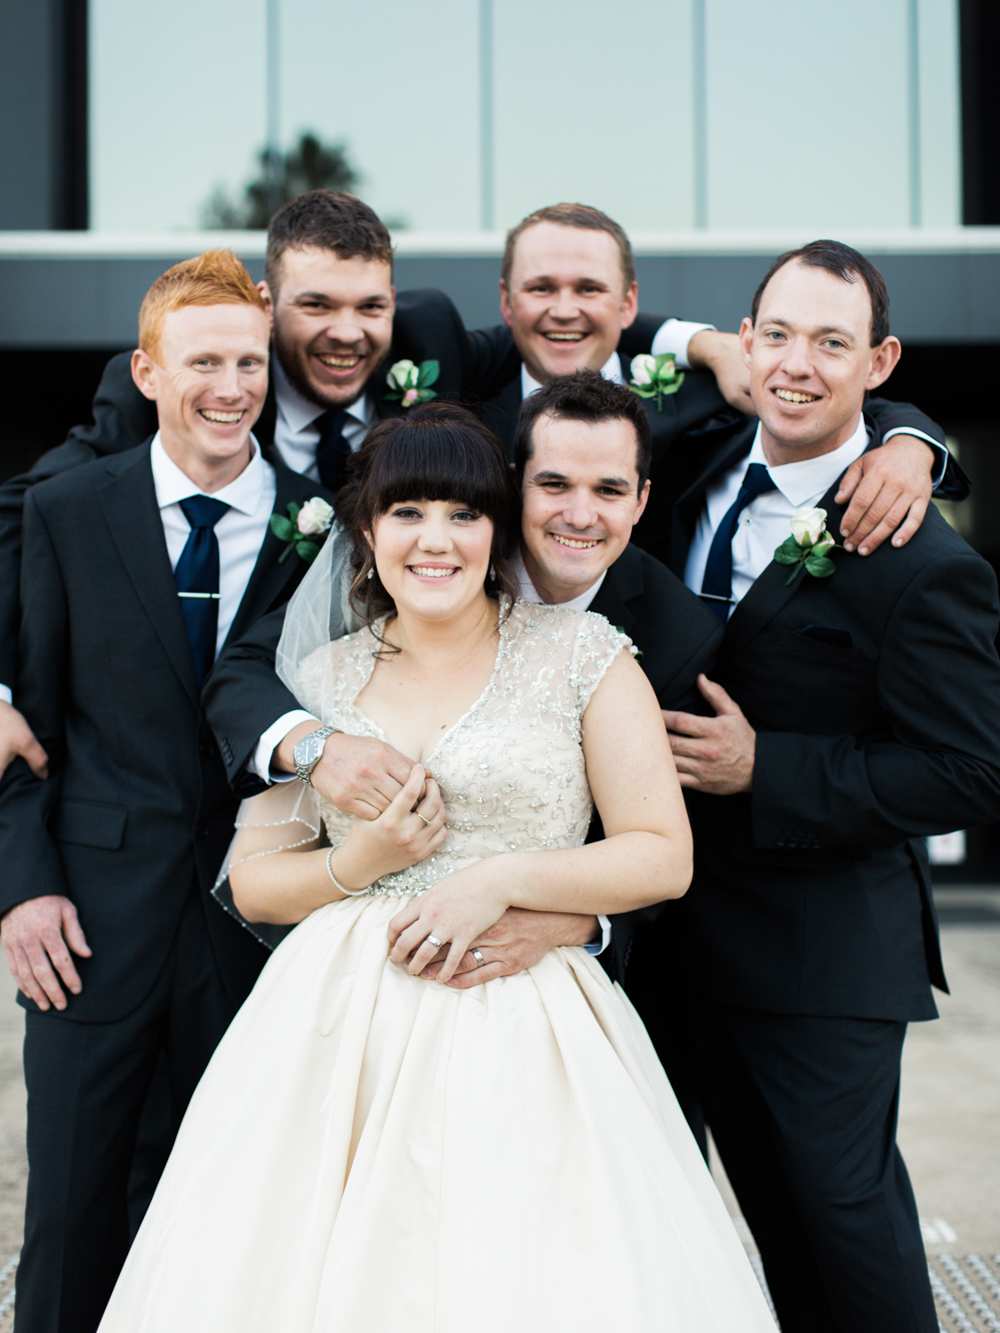 00061- Dubbo NSW Wedding Photographer Sheri McMahon.jpg